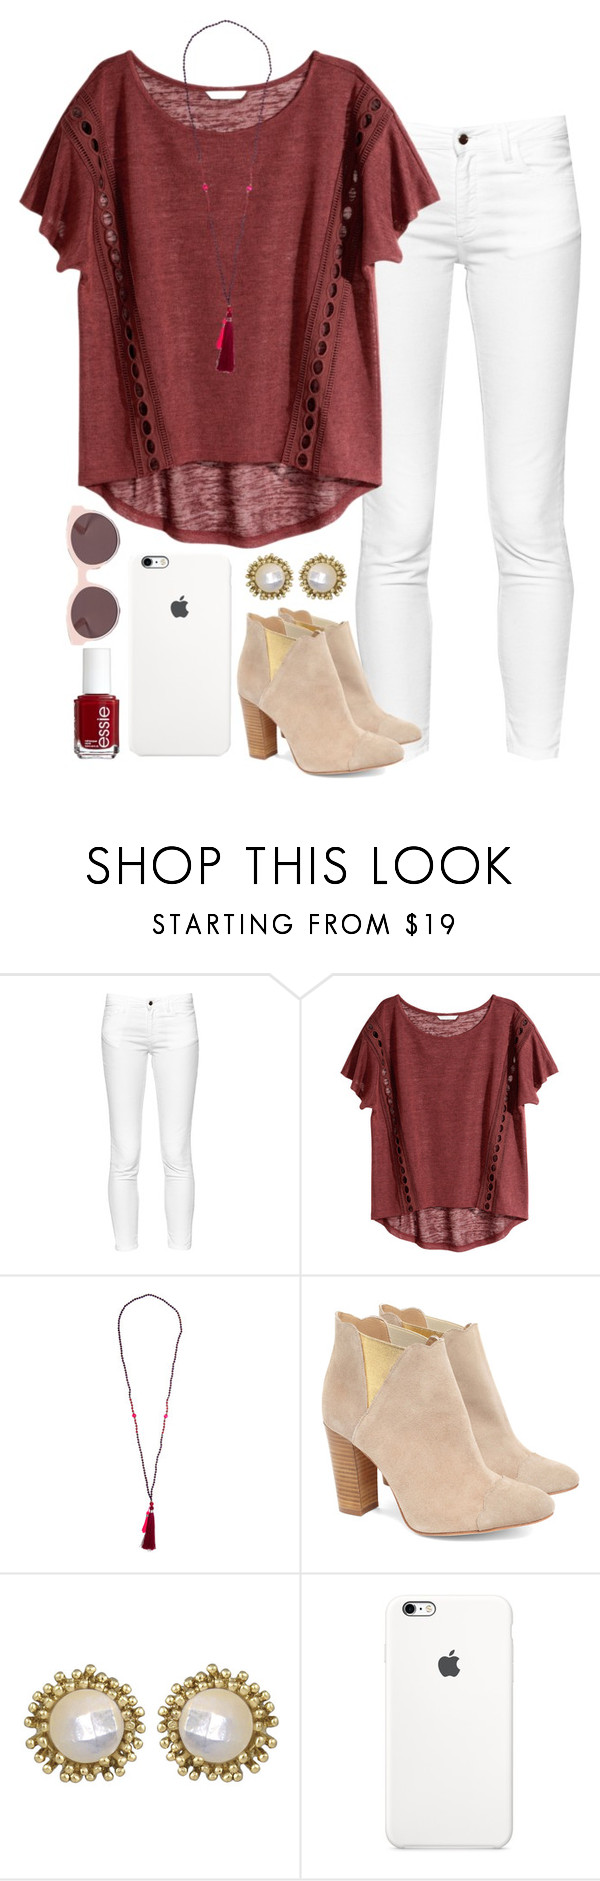 """I'm making a group account! Read the Des!"" by sarahc-01 ❤ liked on Polyvore featuring French Connection, H&M, Cleo B, Kendra Scott, Christian Dior, Essie, women's clothing, women, female and woman"